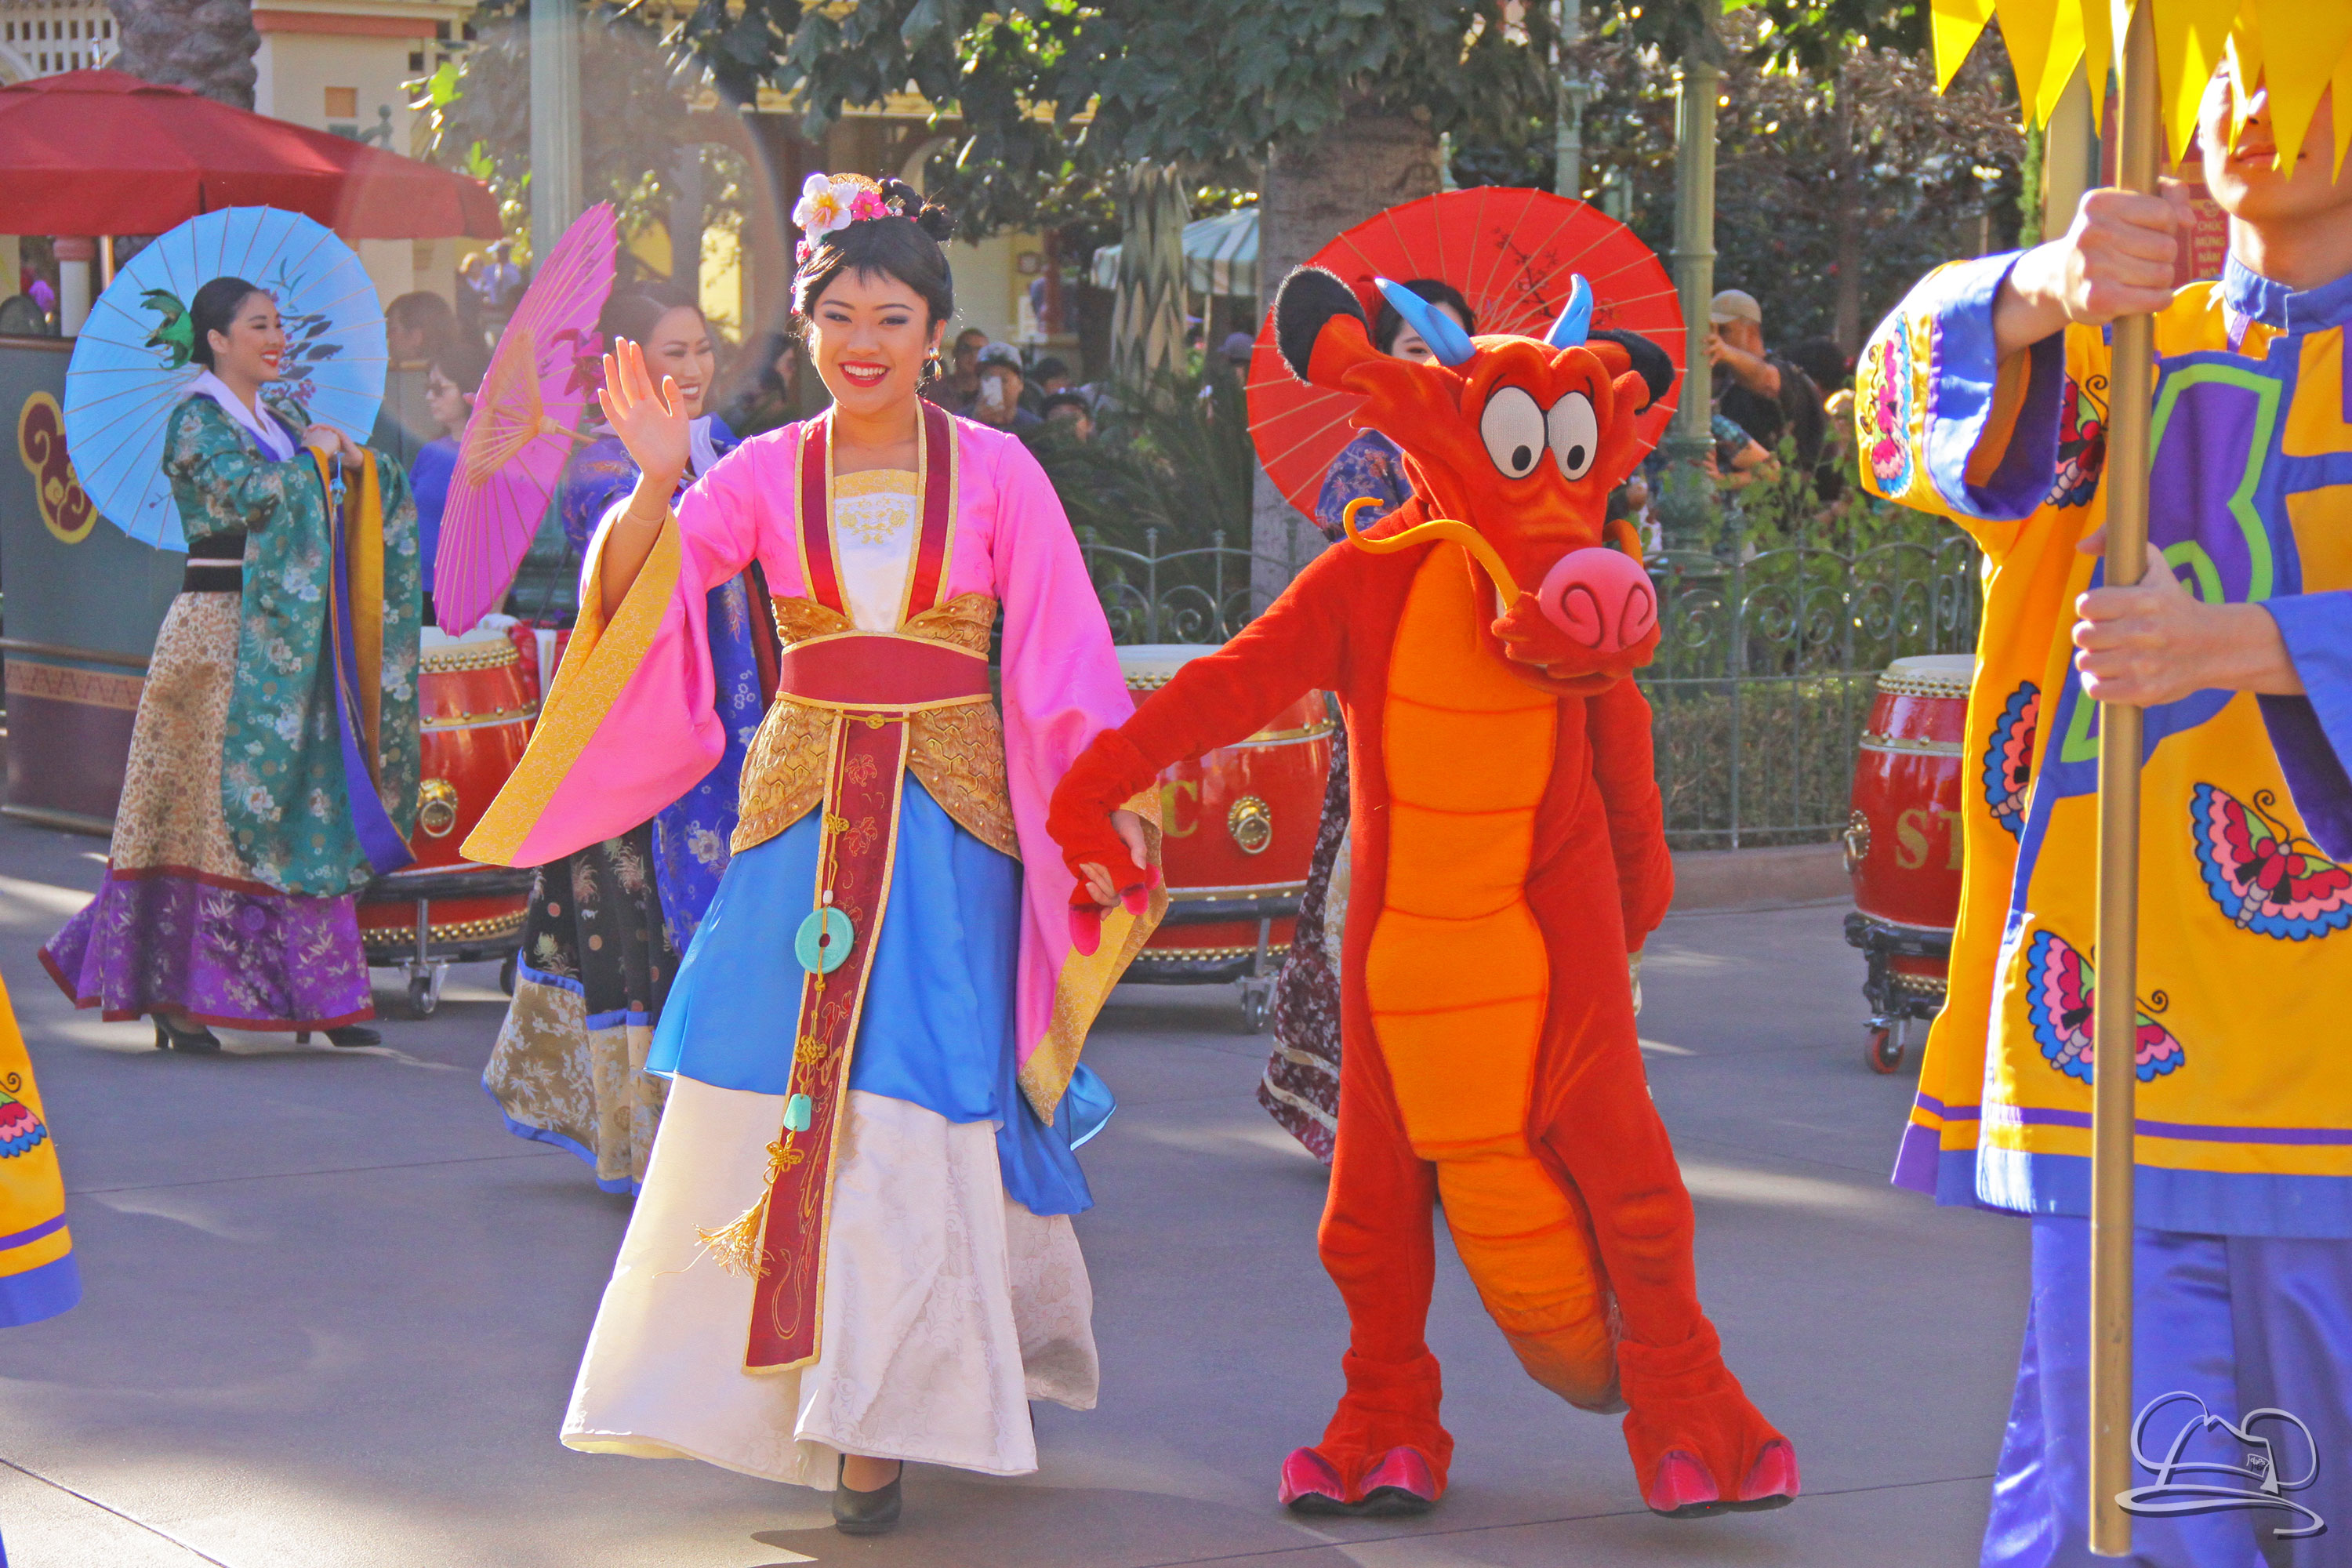 Mulan and Mushu - 2017 Lunar New Year Celebration at Disney California Adventure, Disneyland Resort